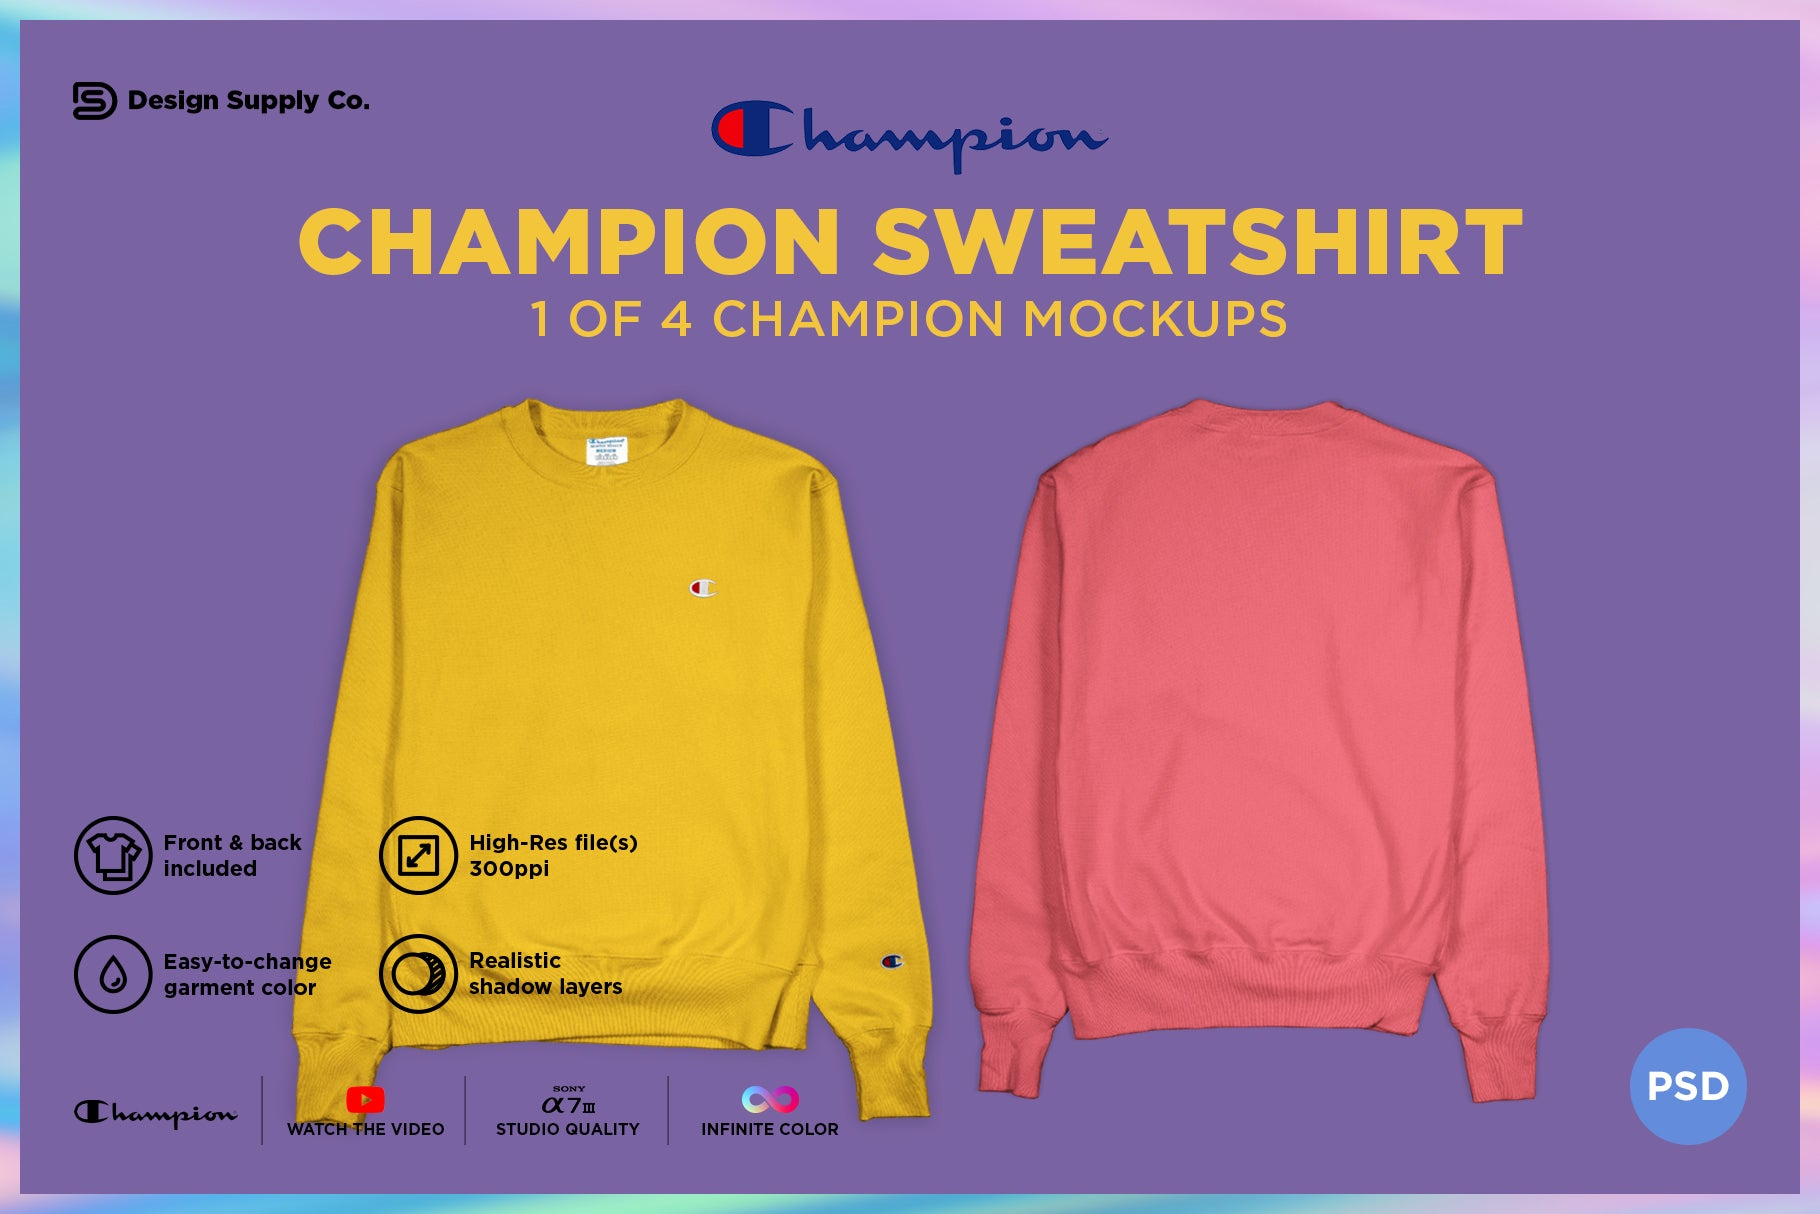 Champion Sweatshirt Mockup